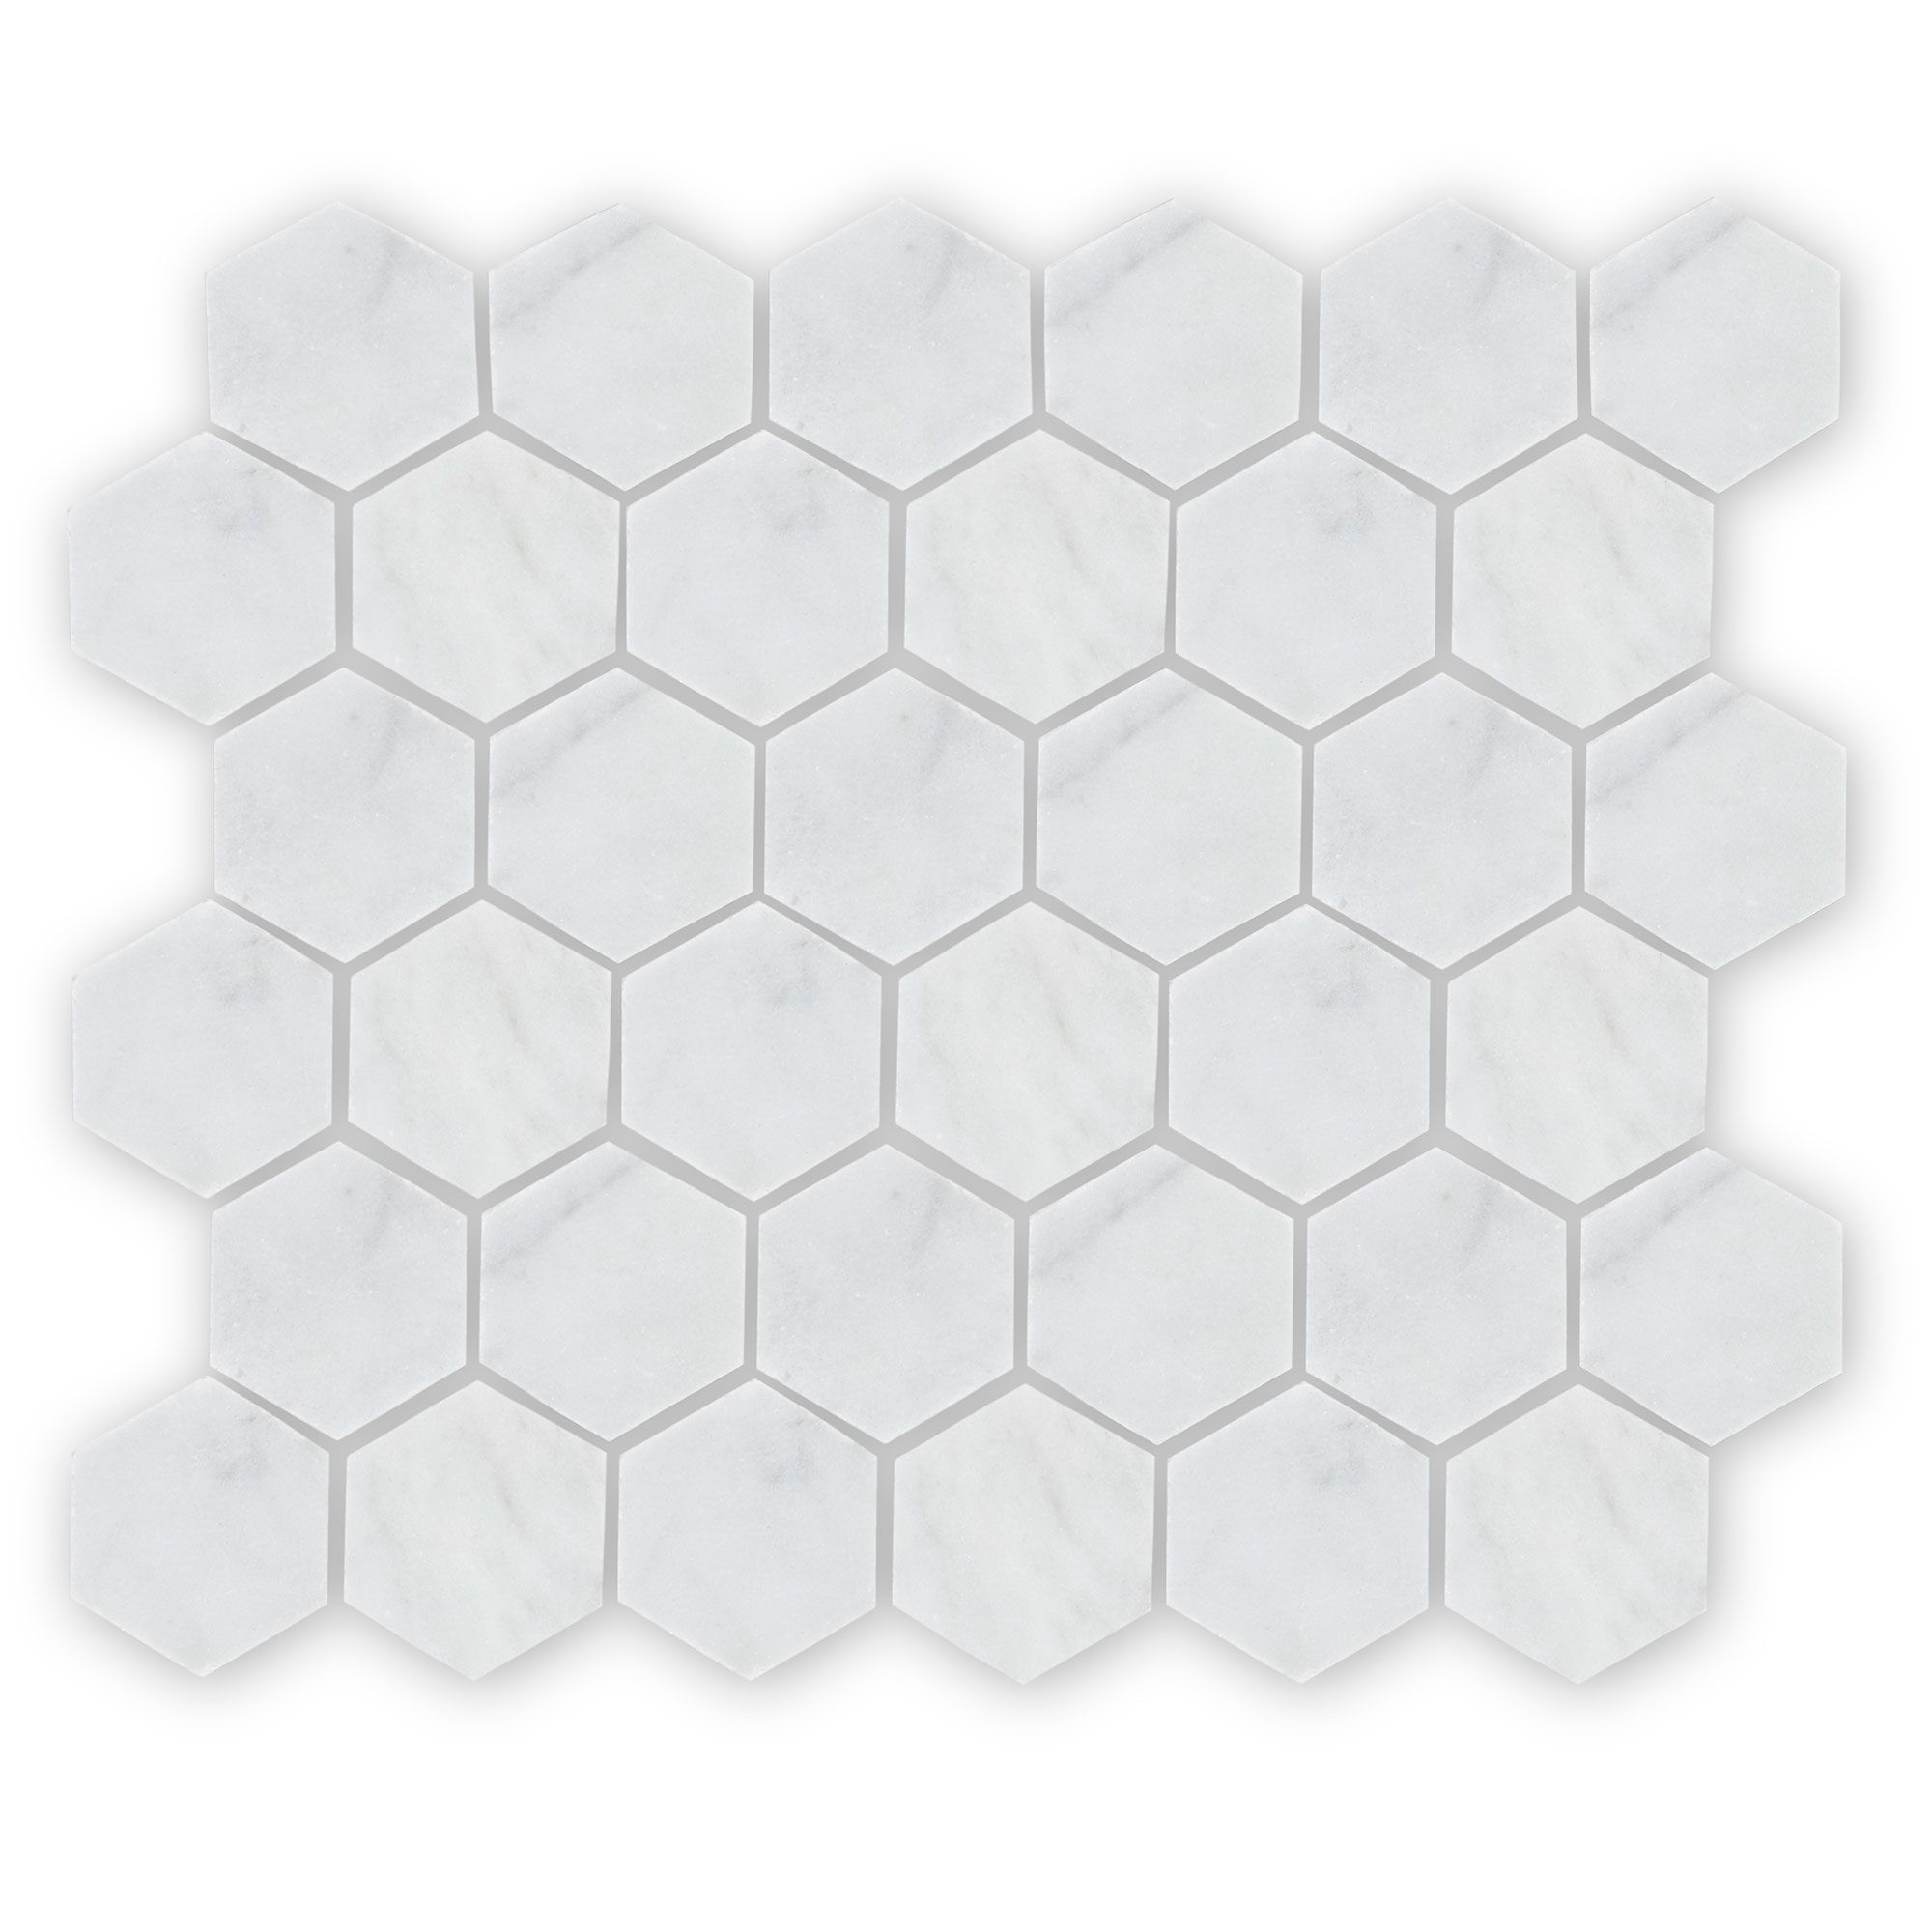 Bridgehampton Hexagon Mosaic, Honed